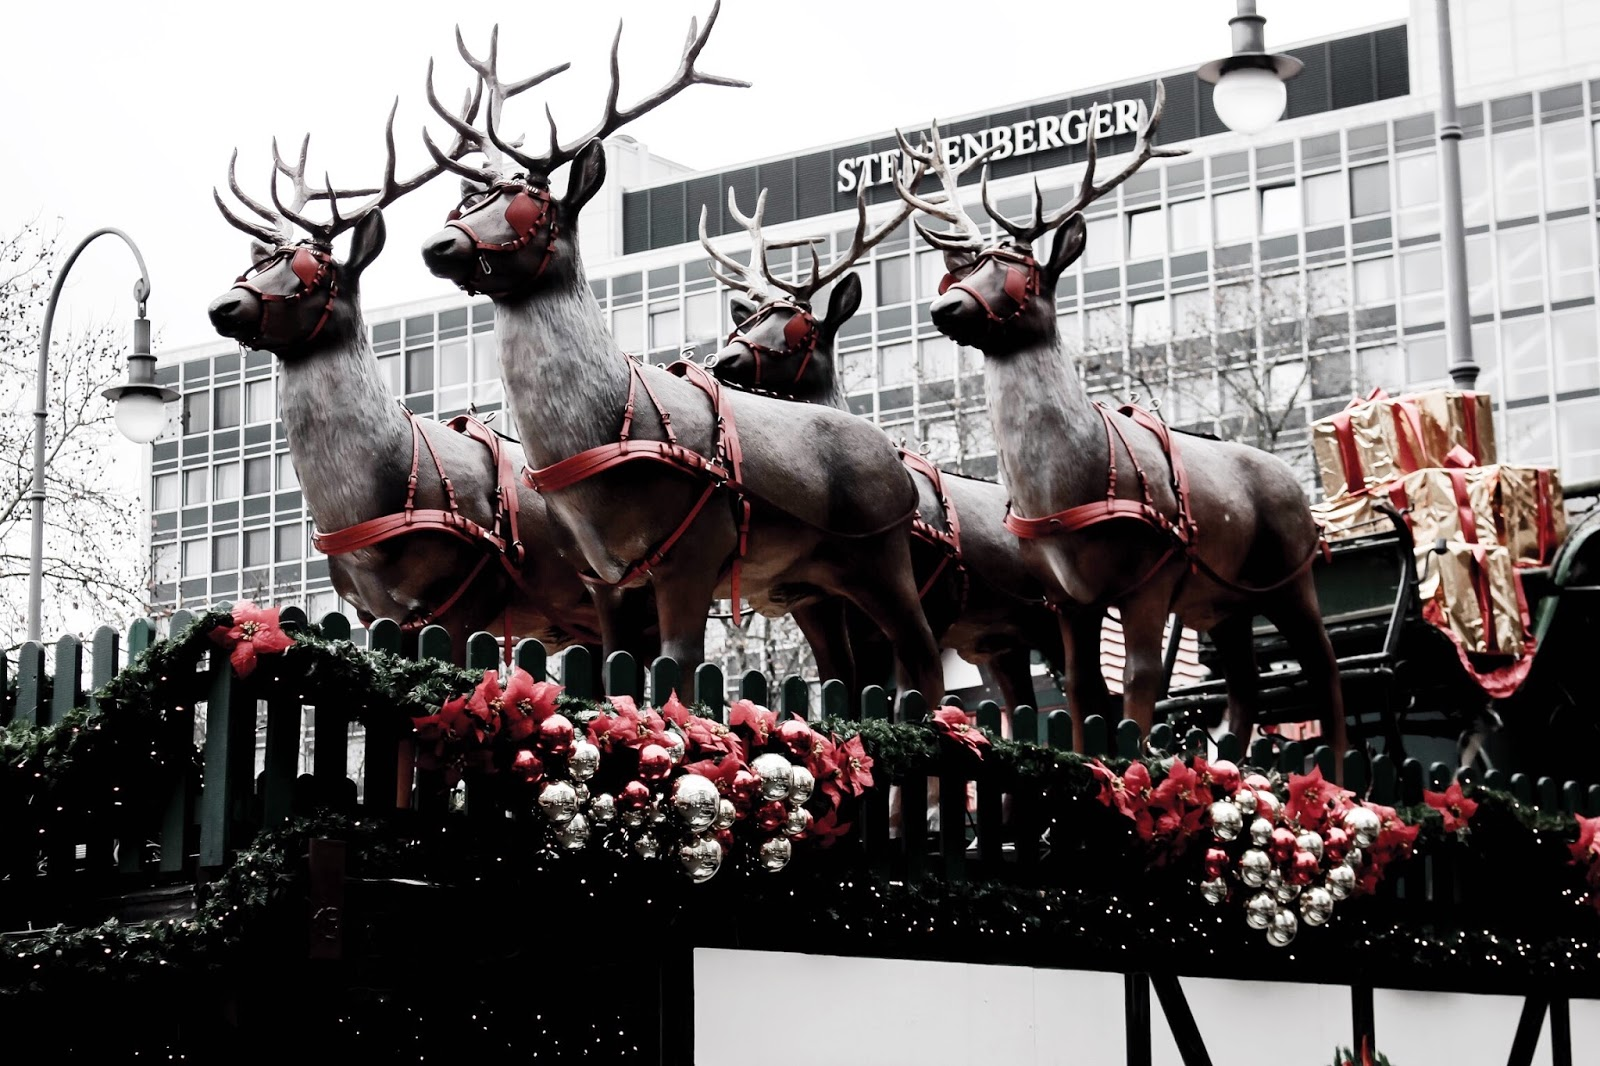 German Christmas Market Reindeers on Roof